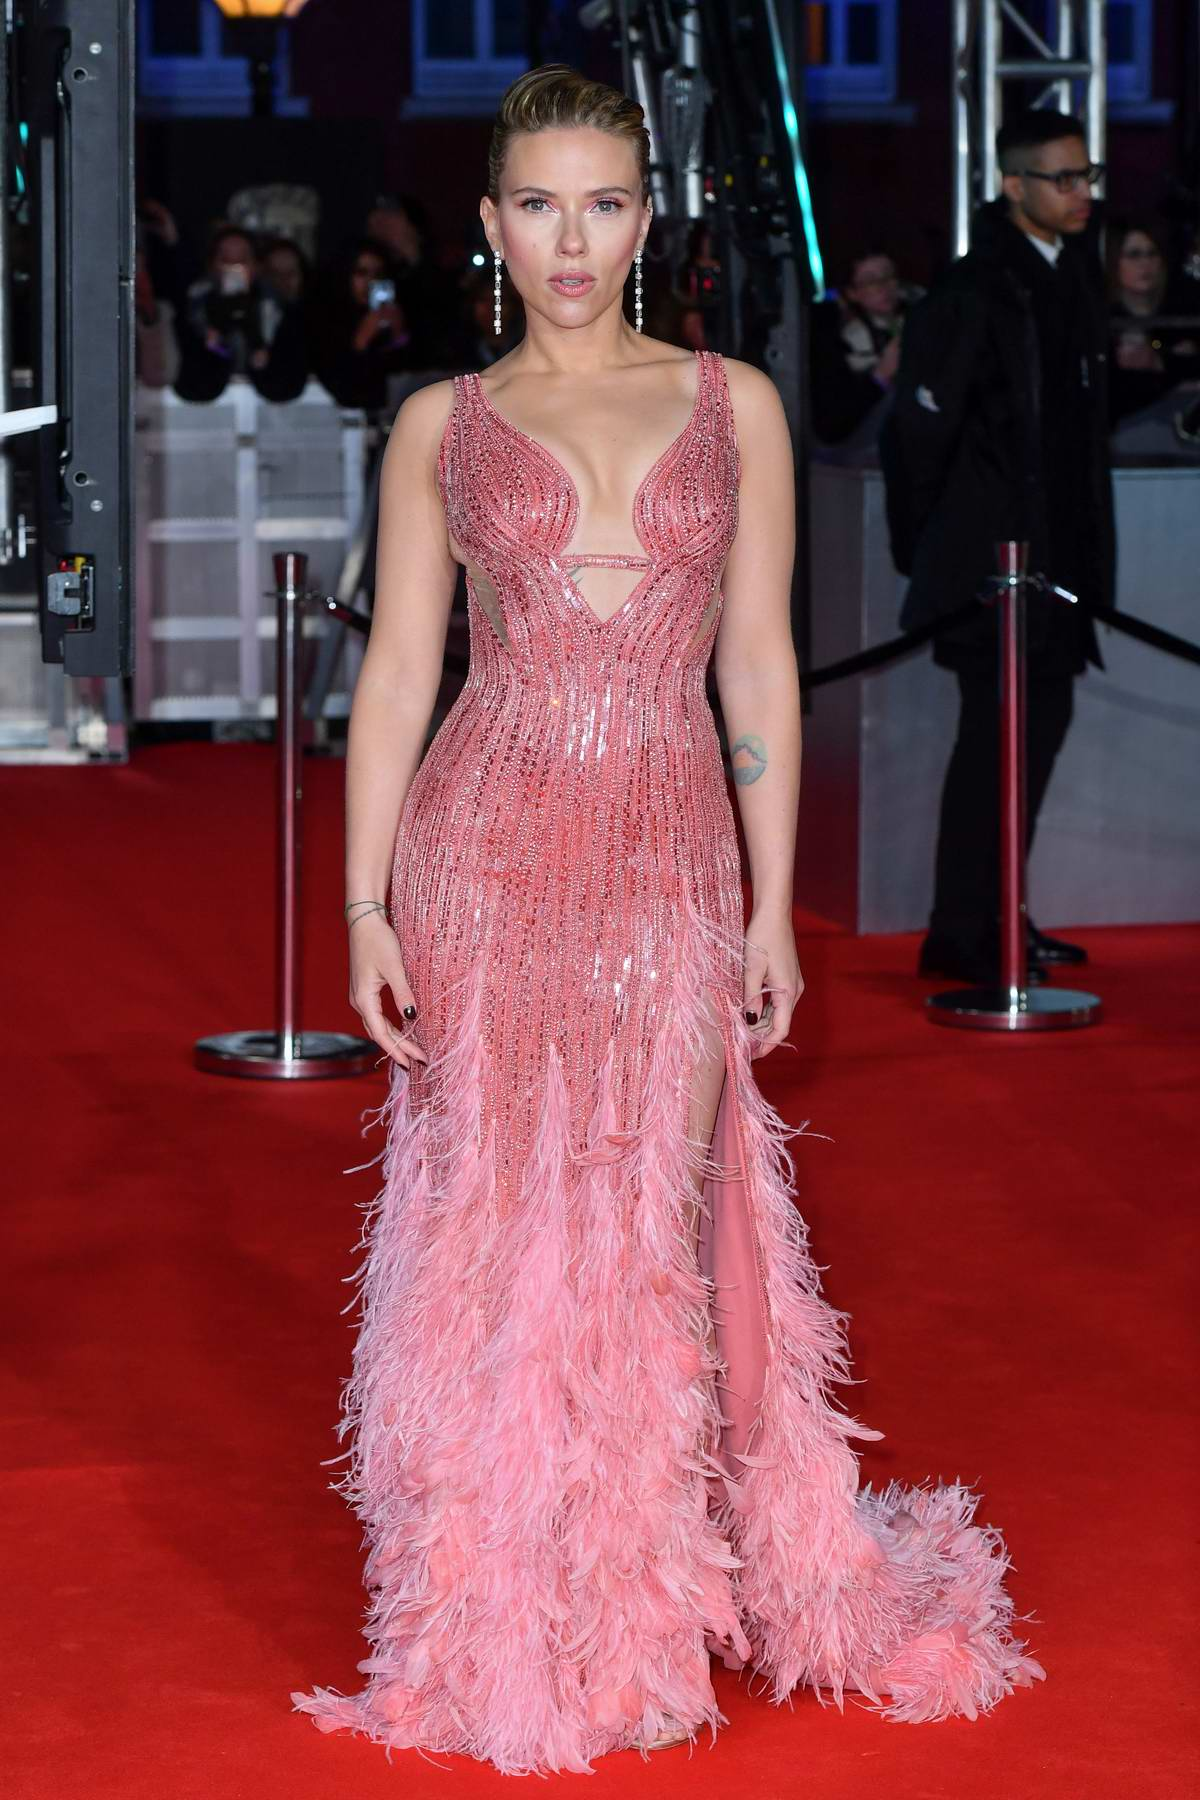 Scarlett Johansson attends the 73rd EE British Academy Film Awards at Royal Albert Hall in London, UK